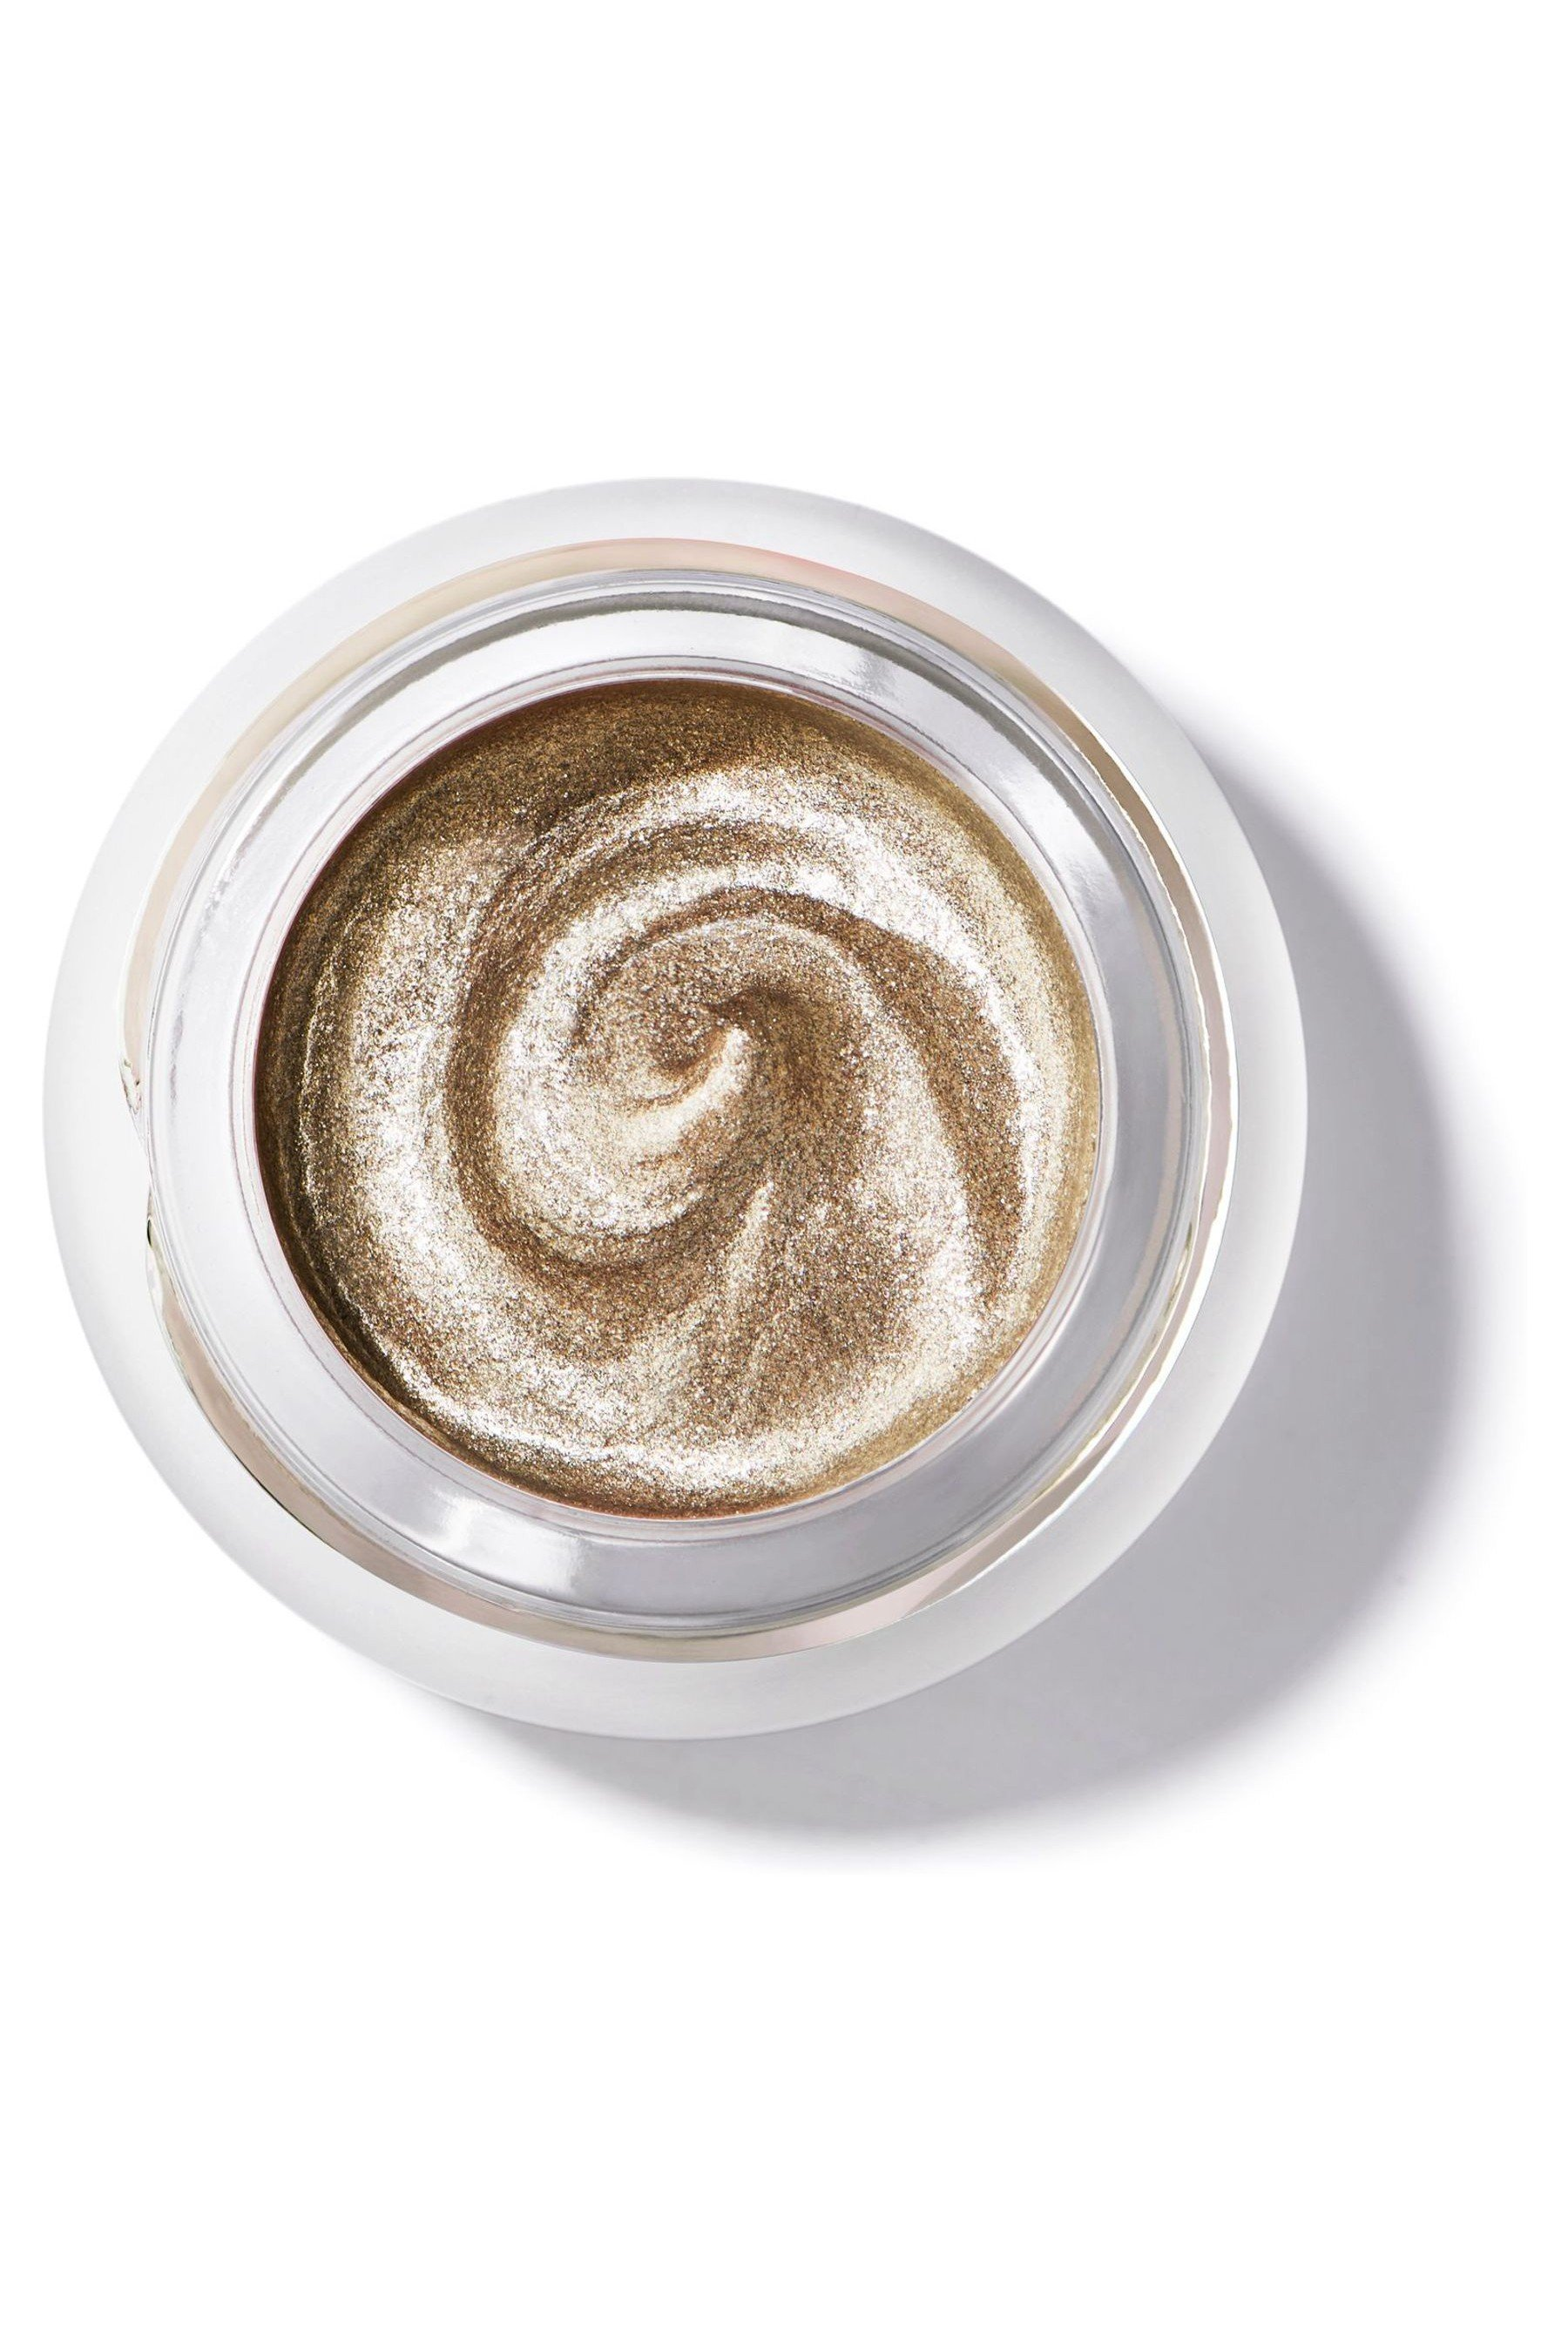 Iconic London Chrome Flash Eye Pot, Eyeshadow, London Loves Beauty